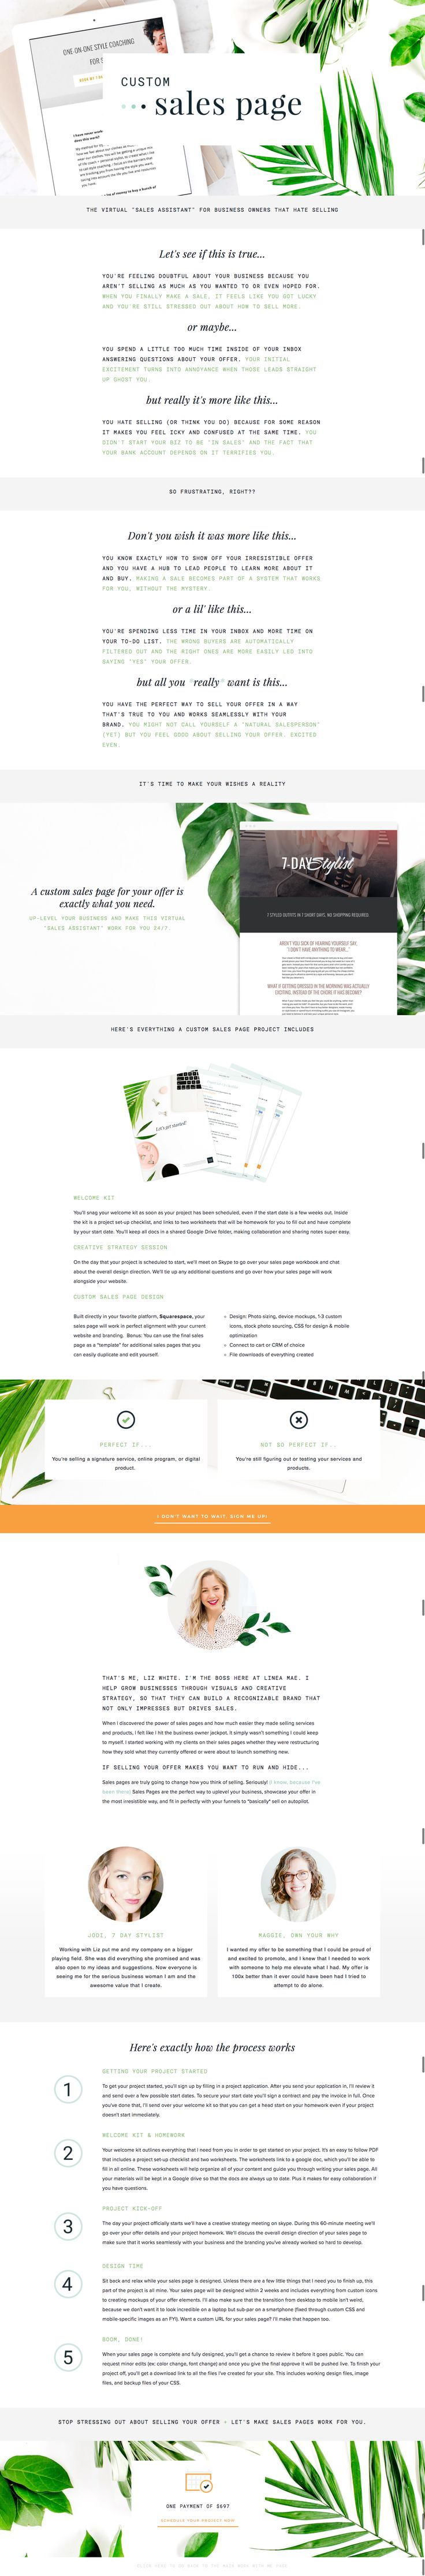 20 best sales page design images on pinterest design websites sales page template sales page ideas sales page layout website layout fandeluxe Image collections